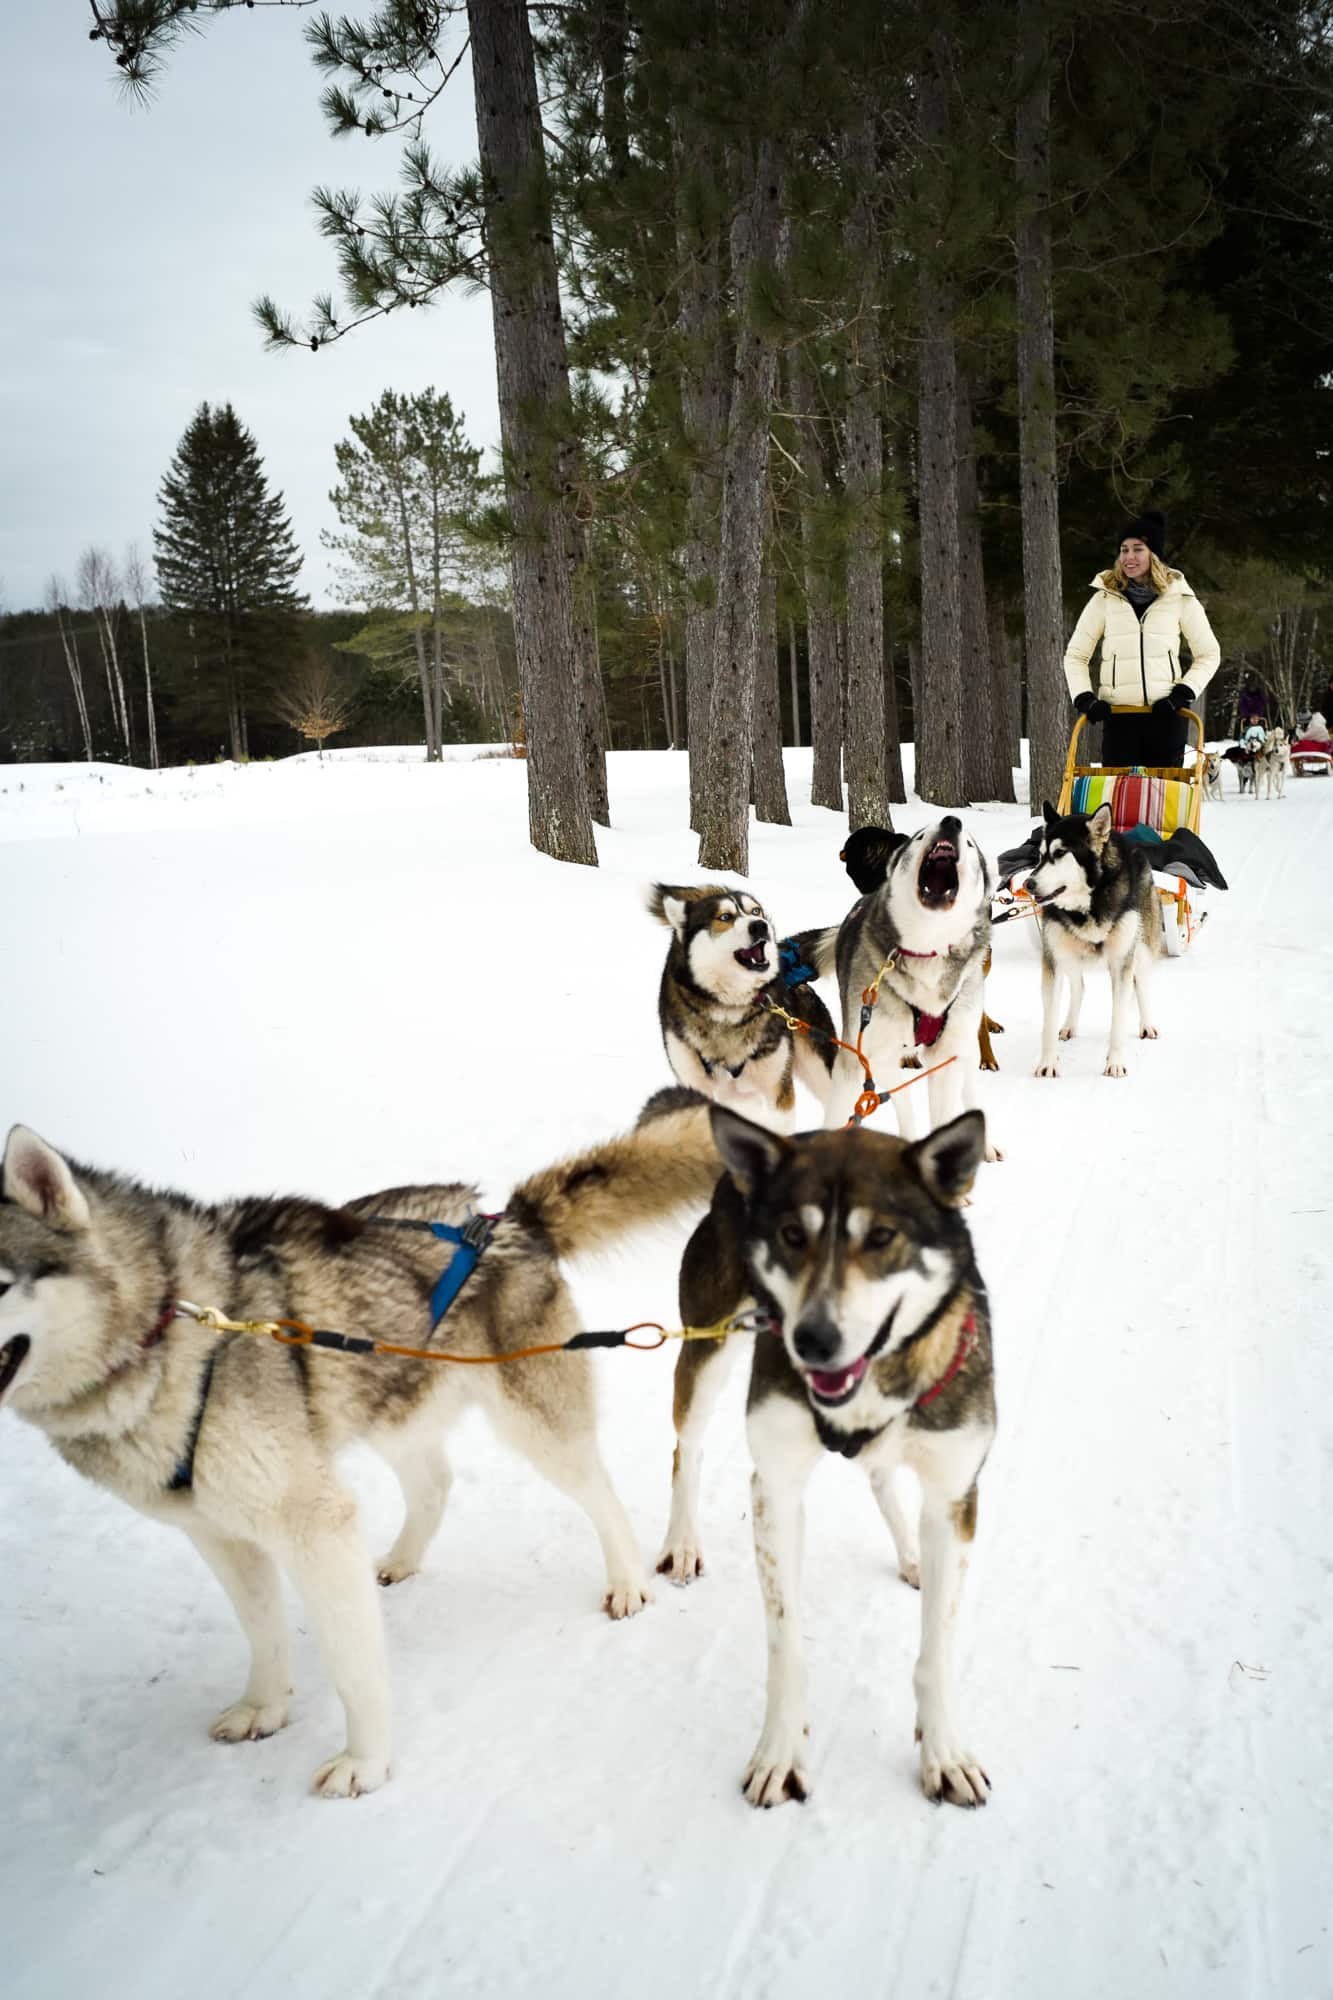 Winter activities such as dog sledding are great for all ages.